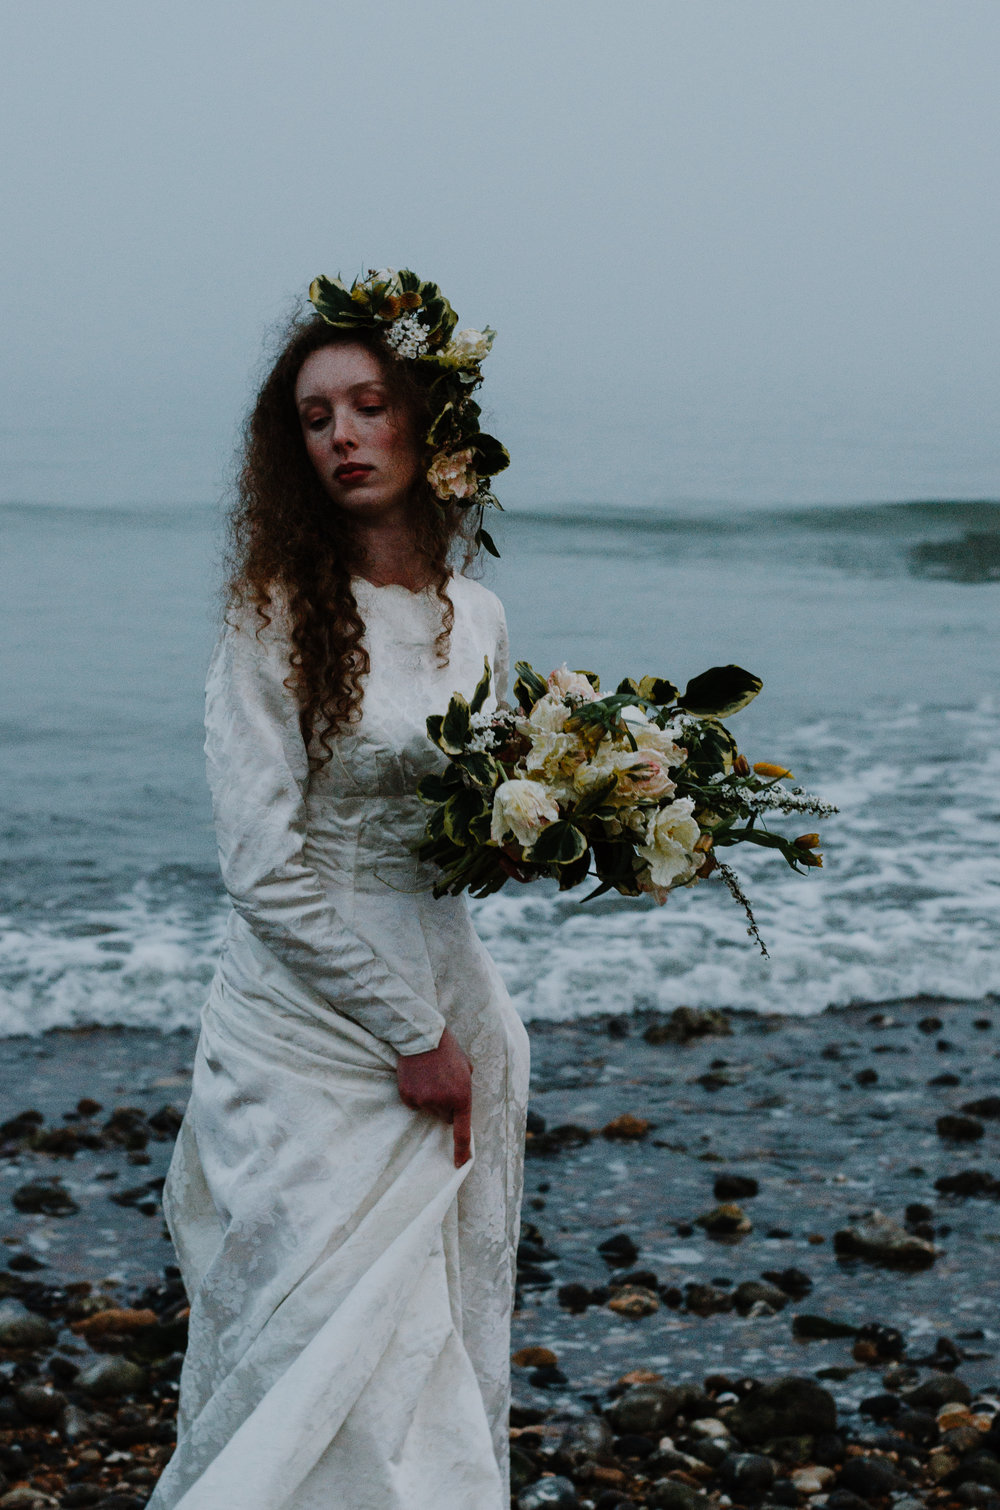 Bridal - Cuckmere Haven 2018 - Aiste Saulyte Photography-174.jpg